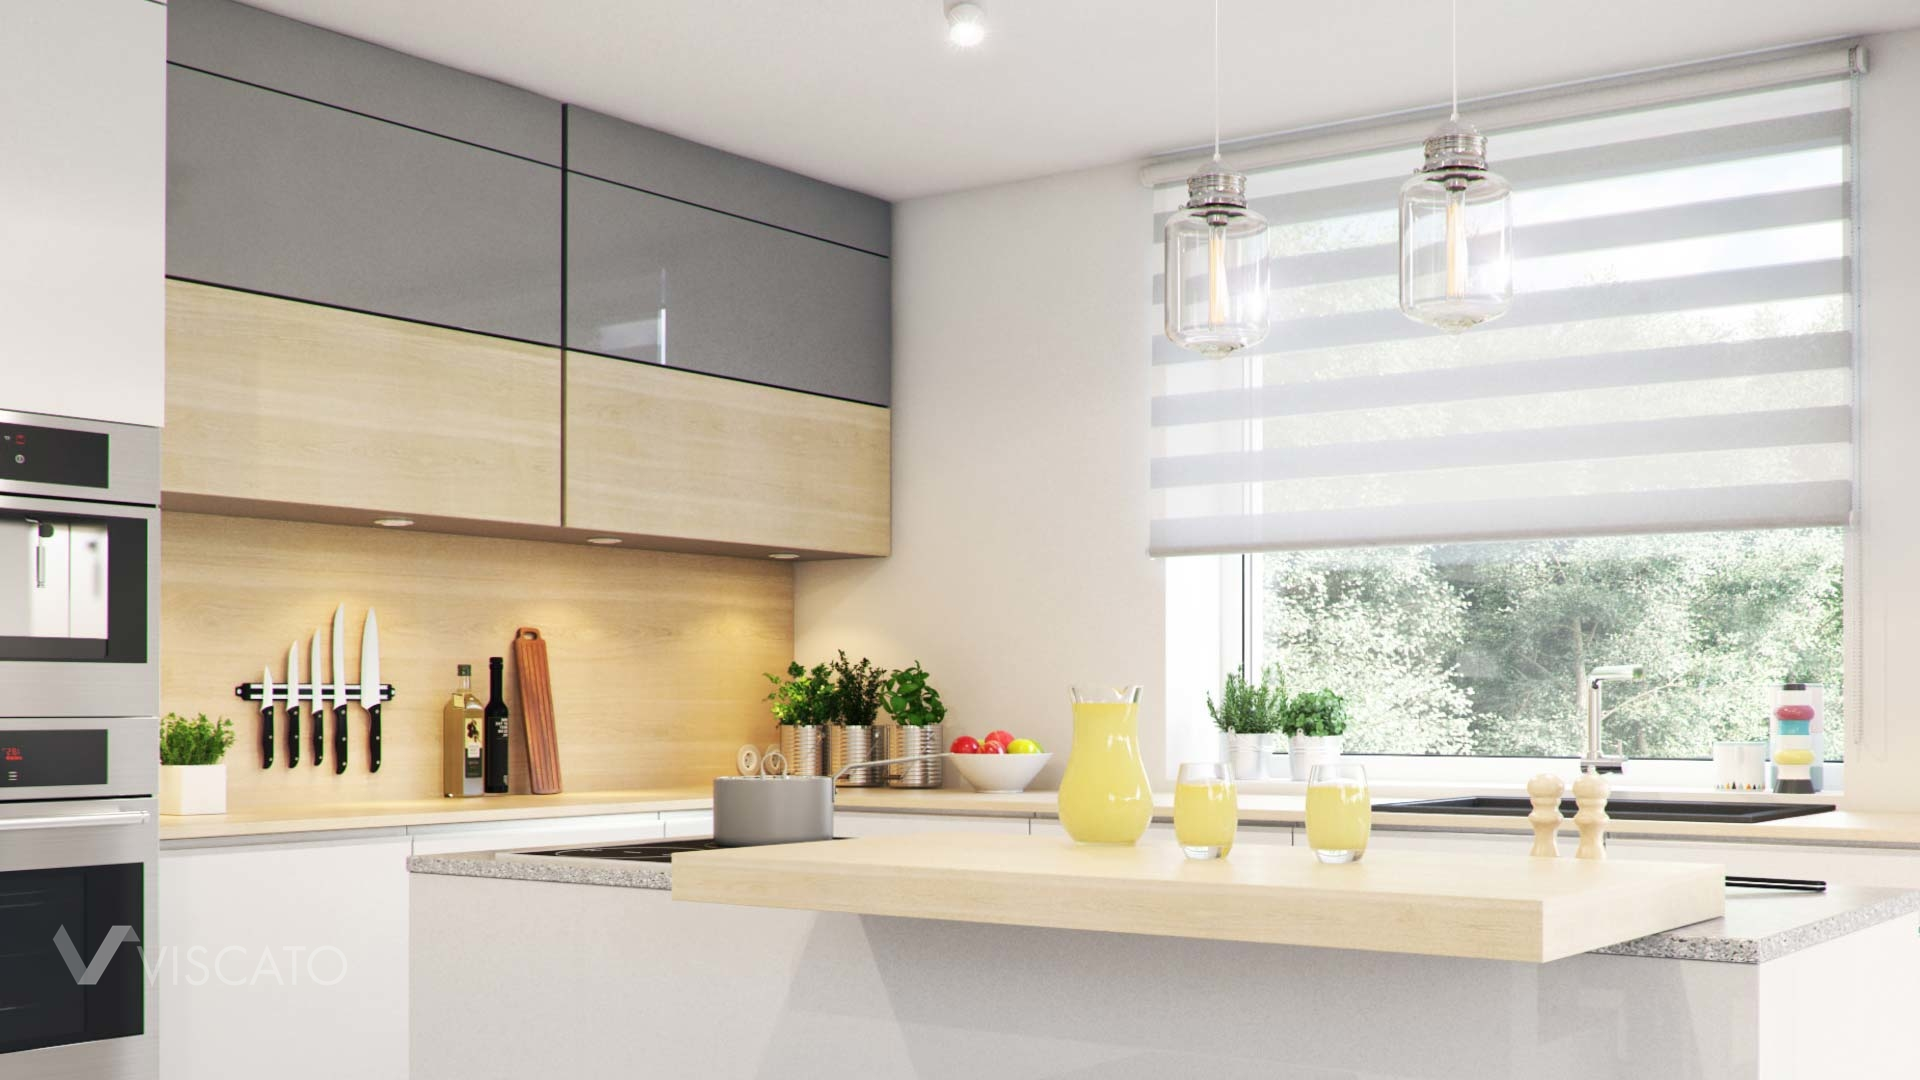 3d interior visualisation of a kitchen- detailed view